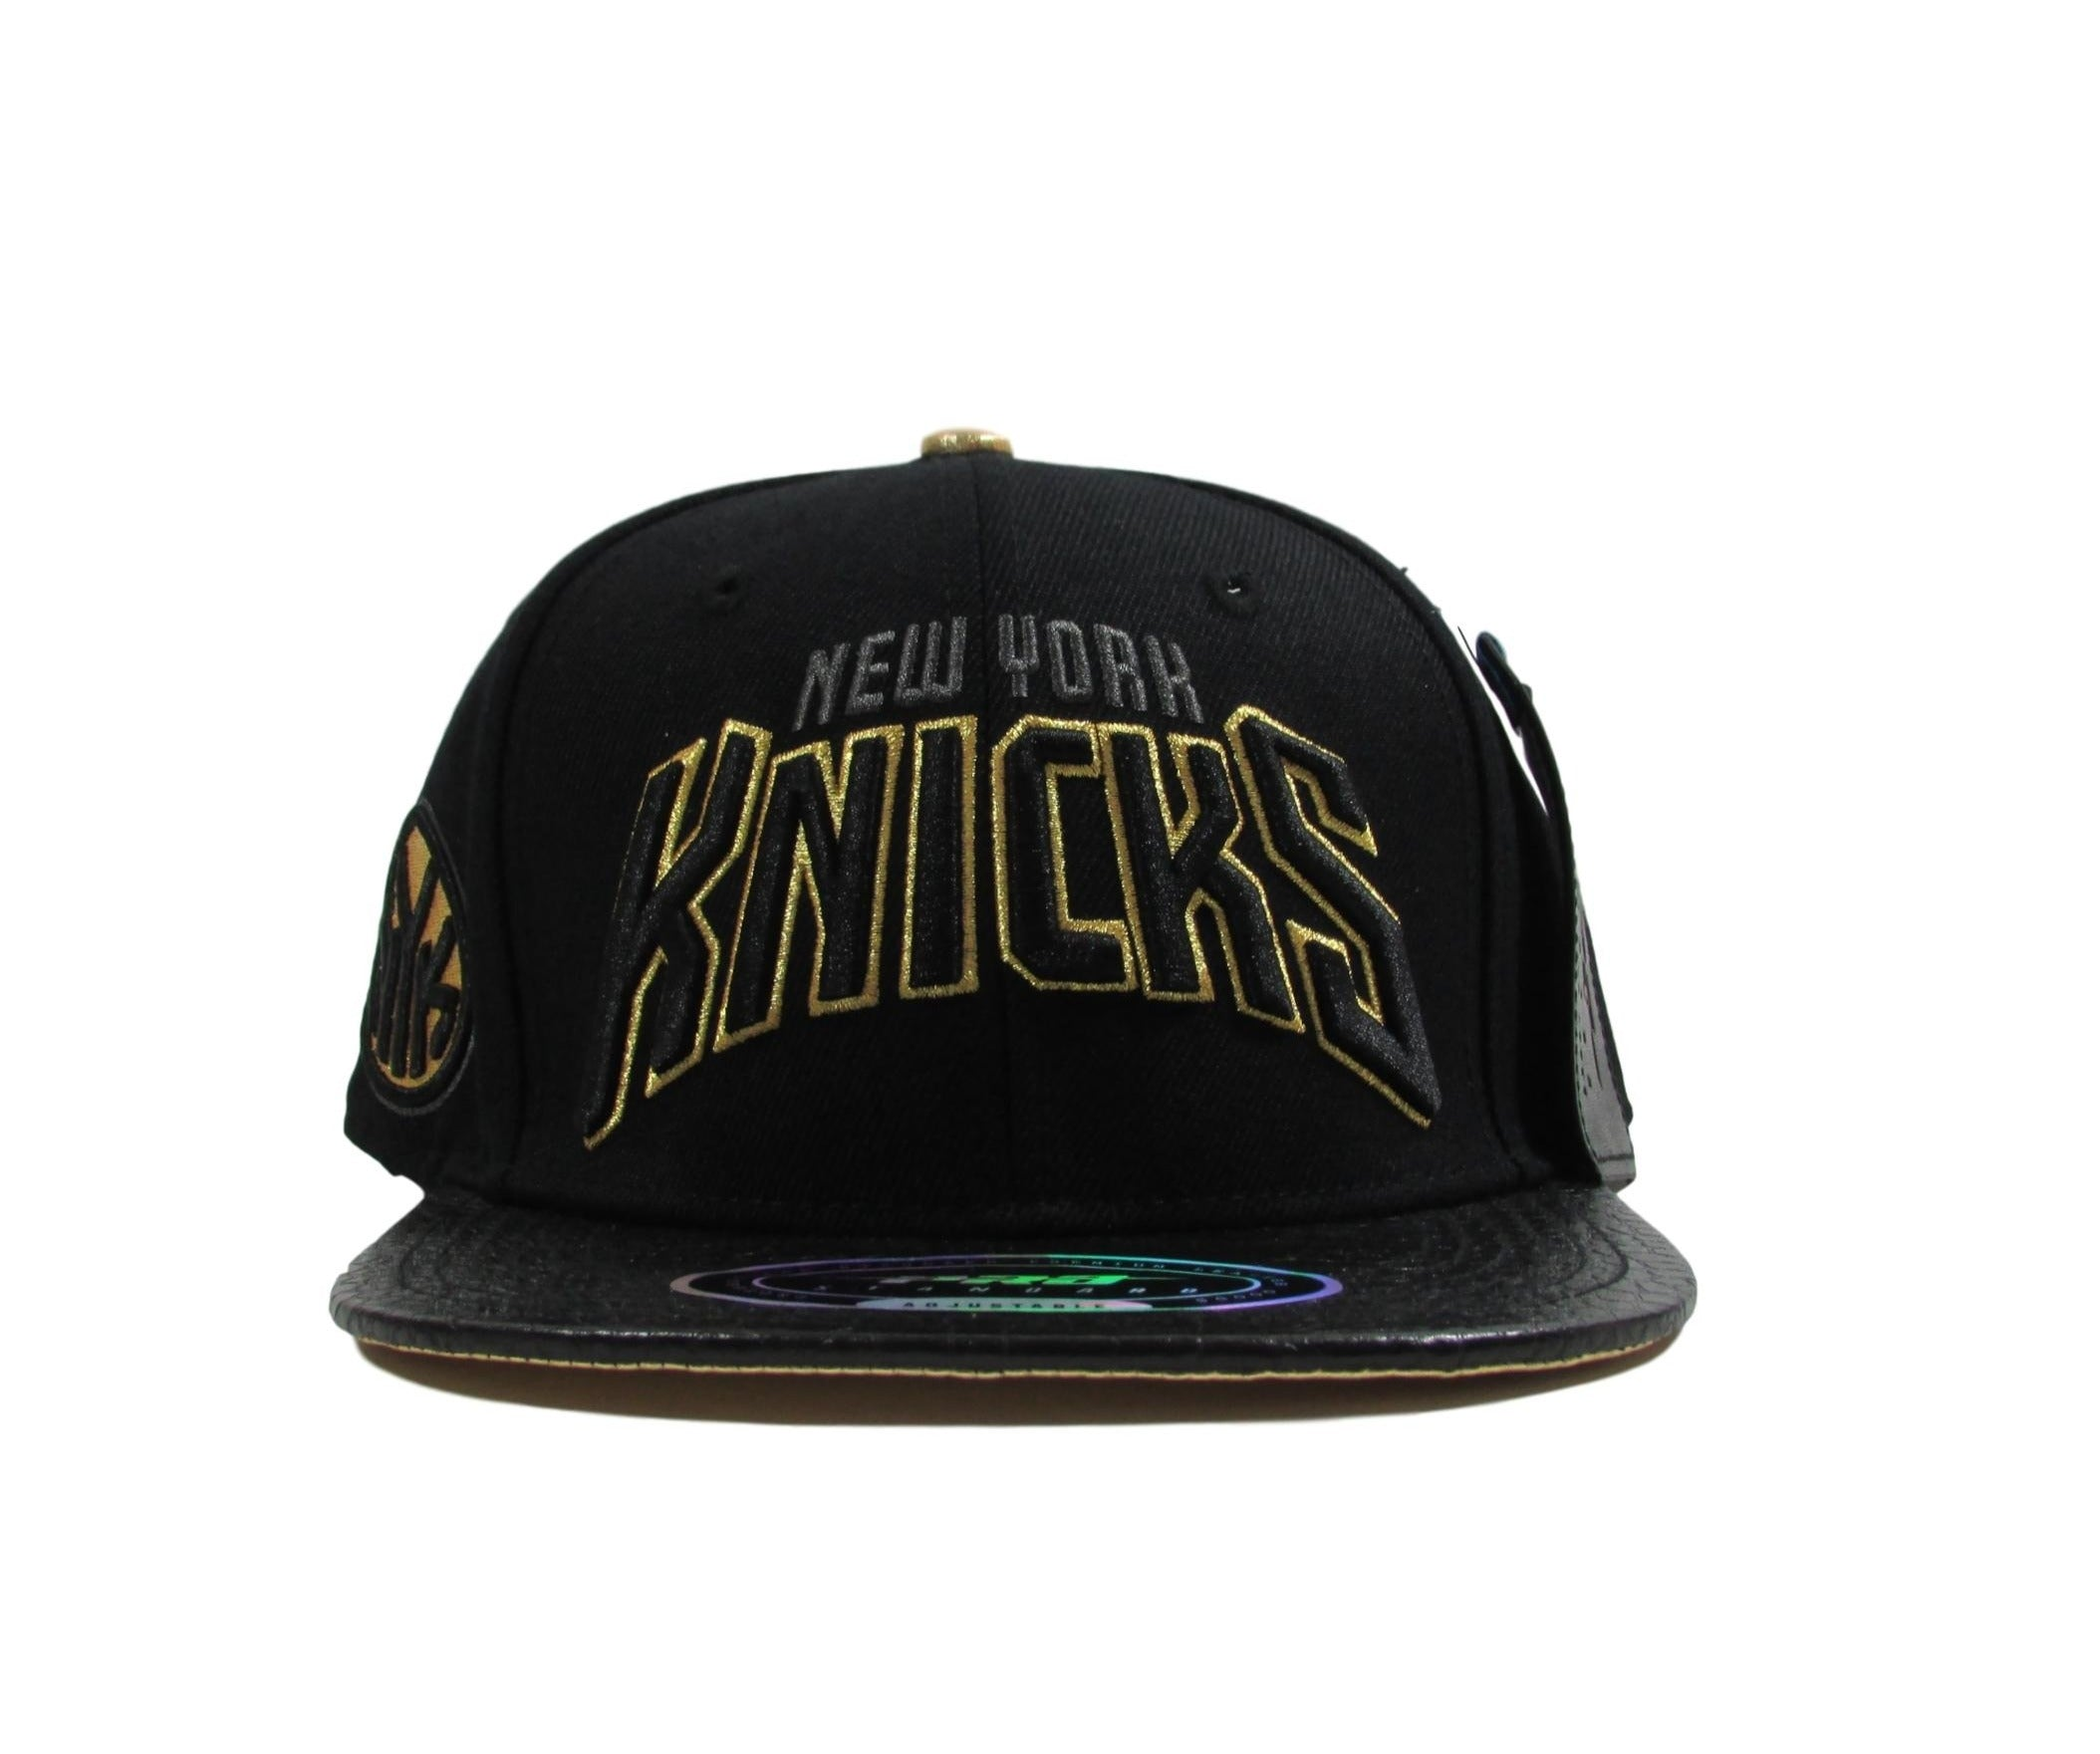 New York Knicks Genuine Leather Snapback Hat by PRO STANDARD